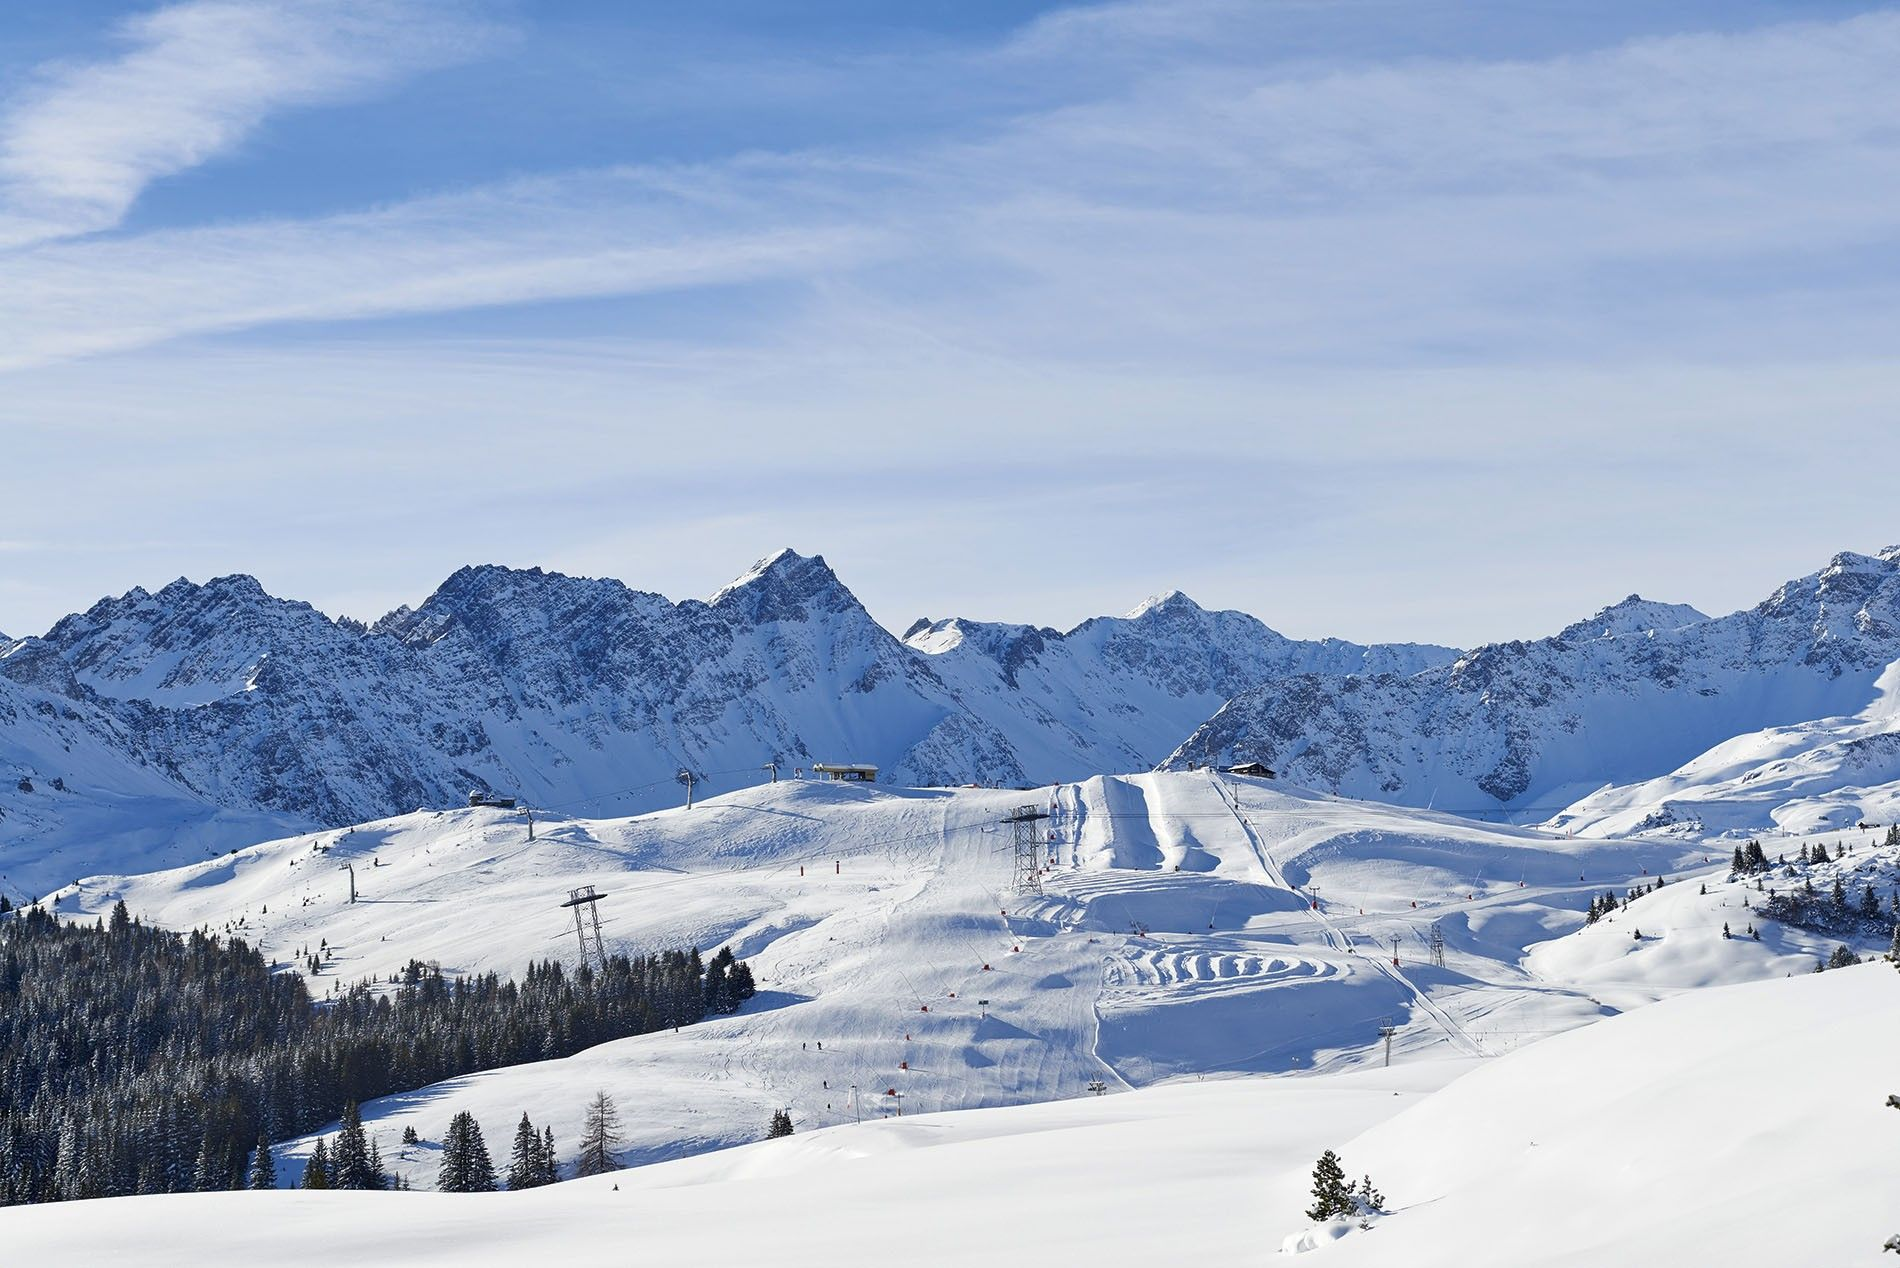 The ski region Arose Lenzerheide, a jewel in the Swiss canton of Graubünden, is one of Switzerland's largest ski areas with 140 miles of groomed pistes.